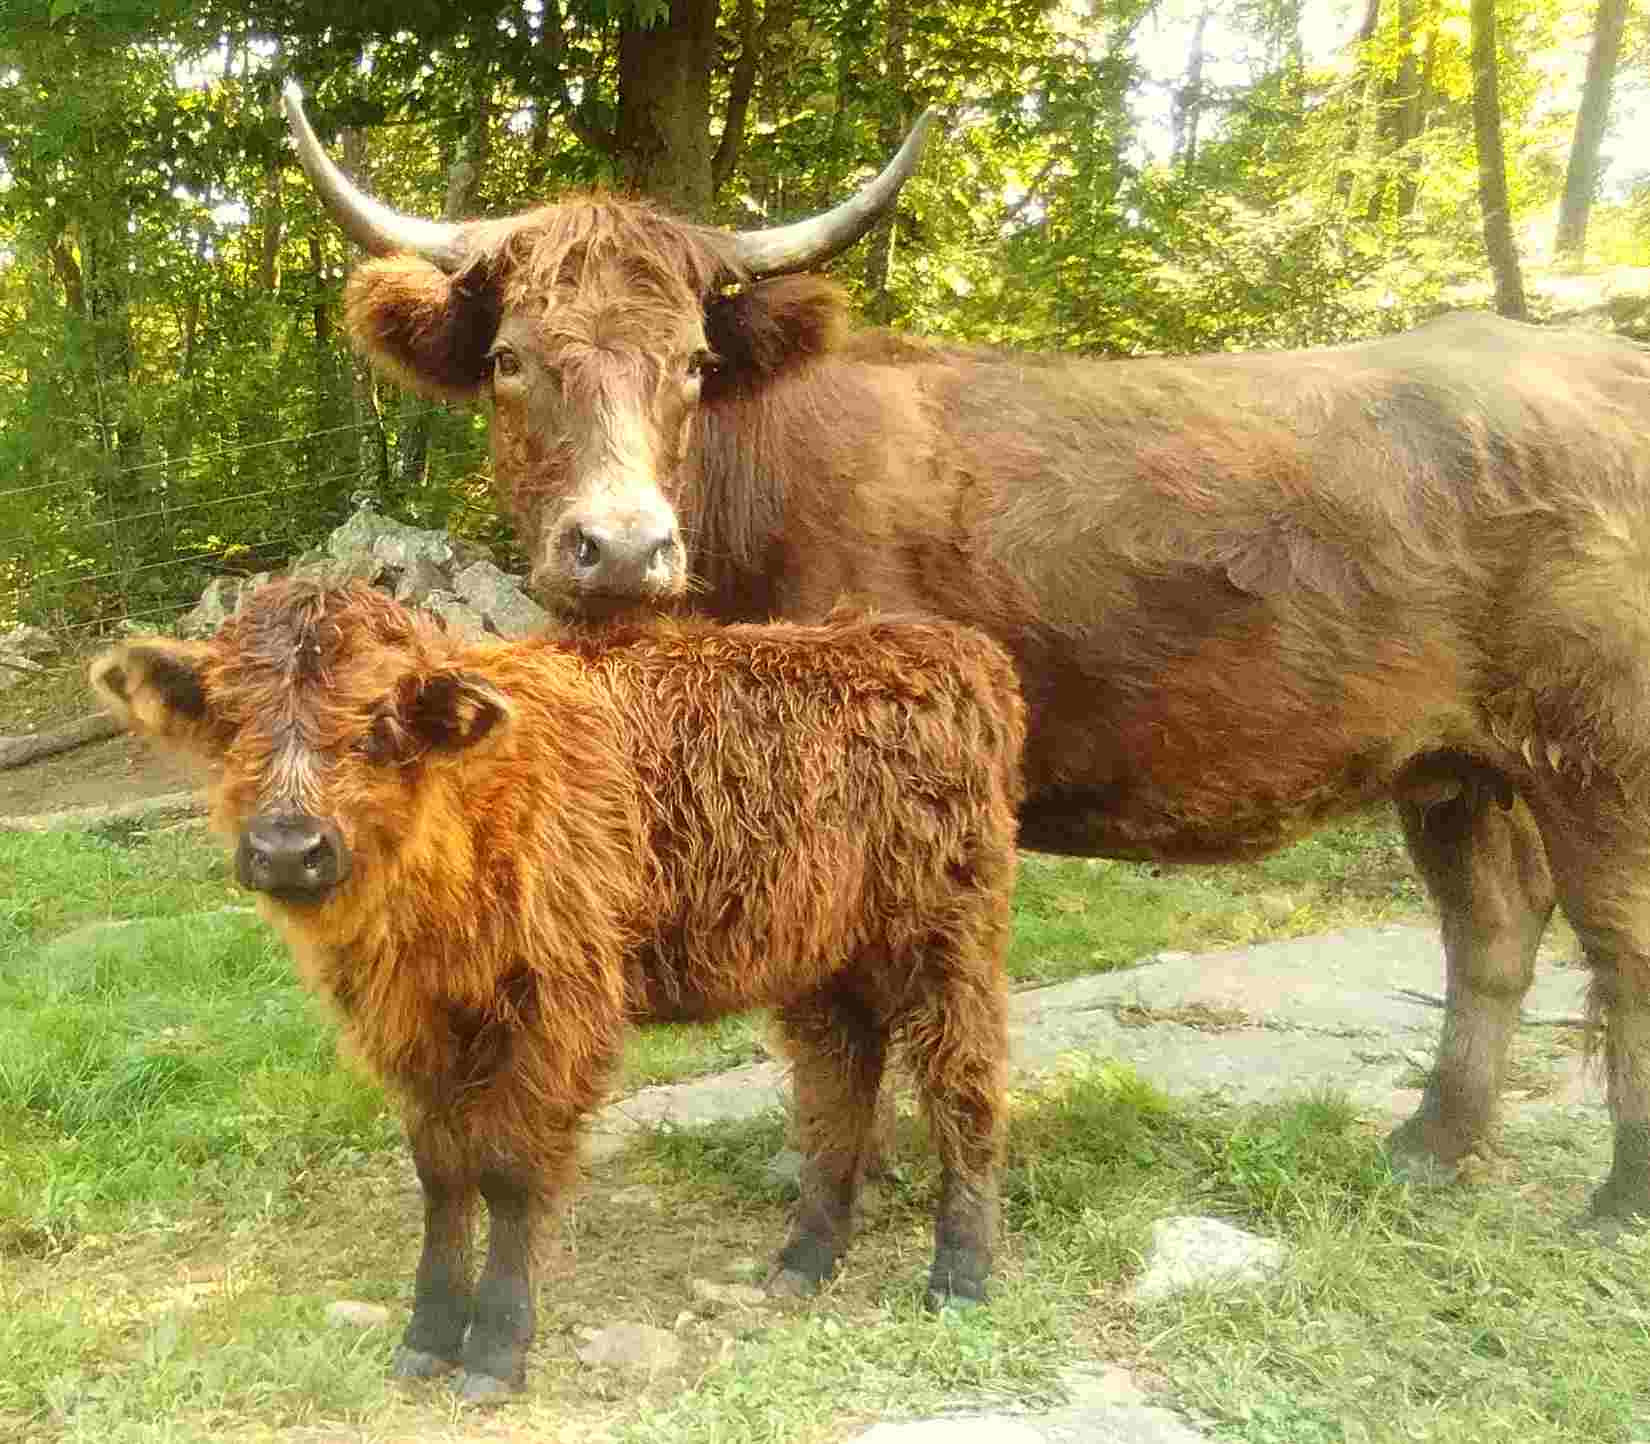 Elsie, a Highlander Pinzgauer Cross, pictured with her mother, born July 16, 2021, $2500